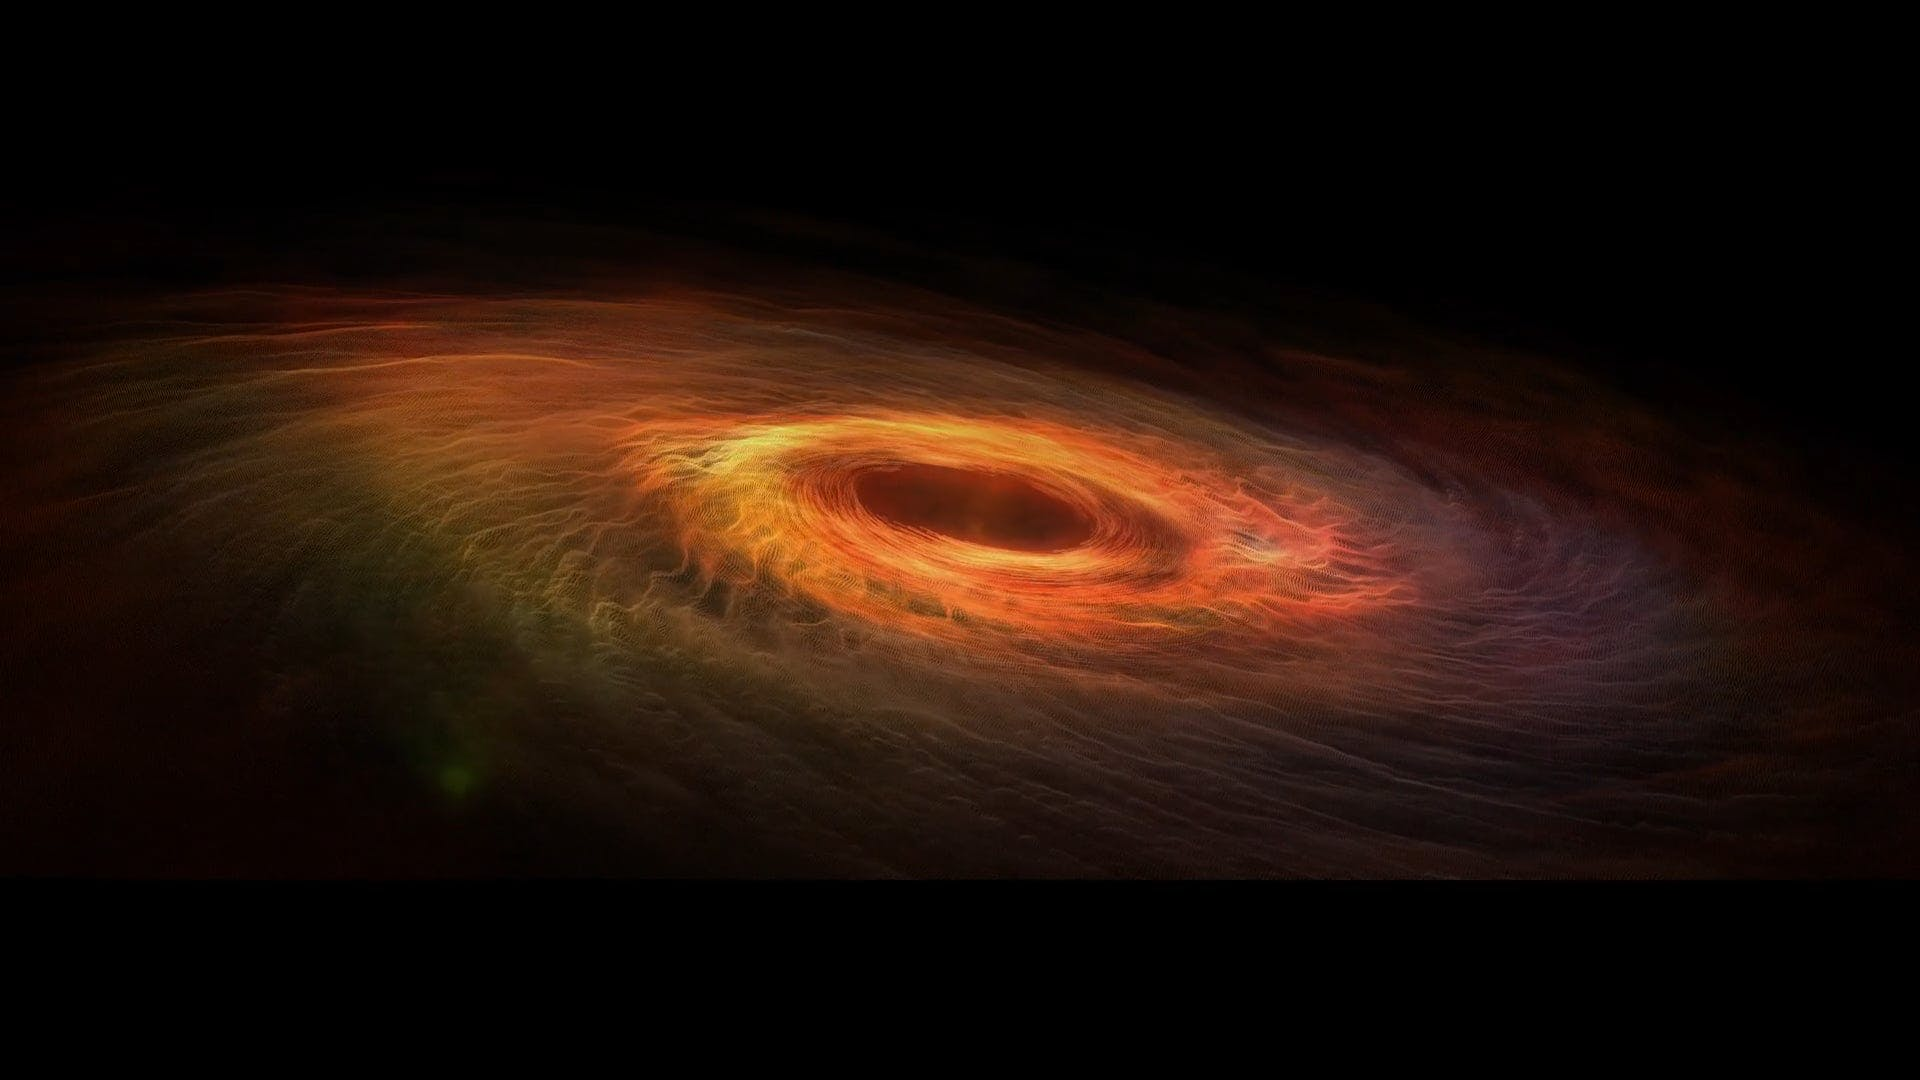 CG Animation Of Black Hole